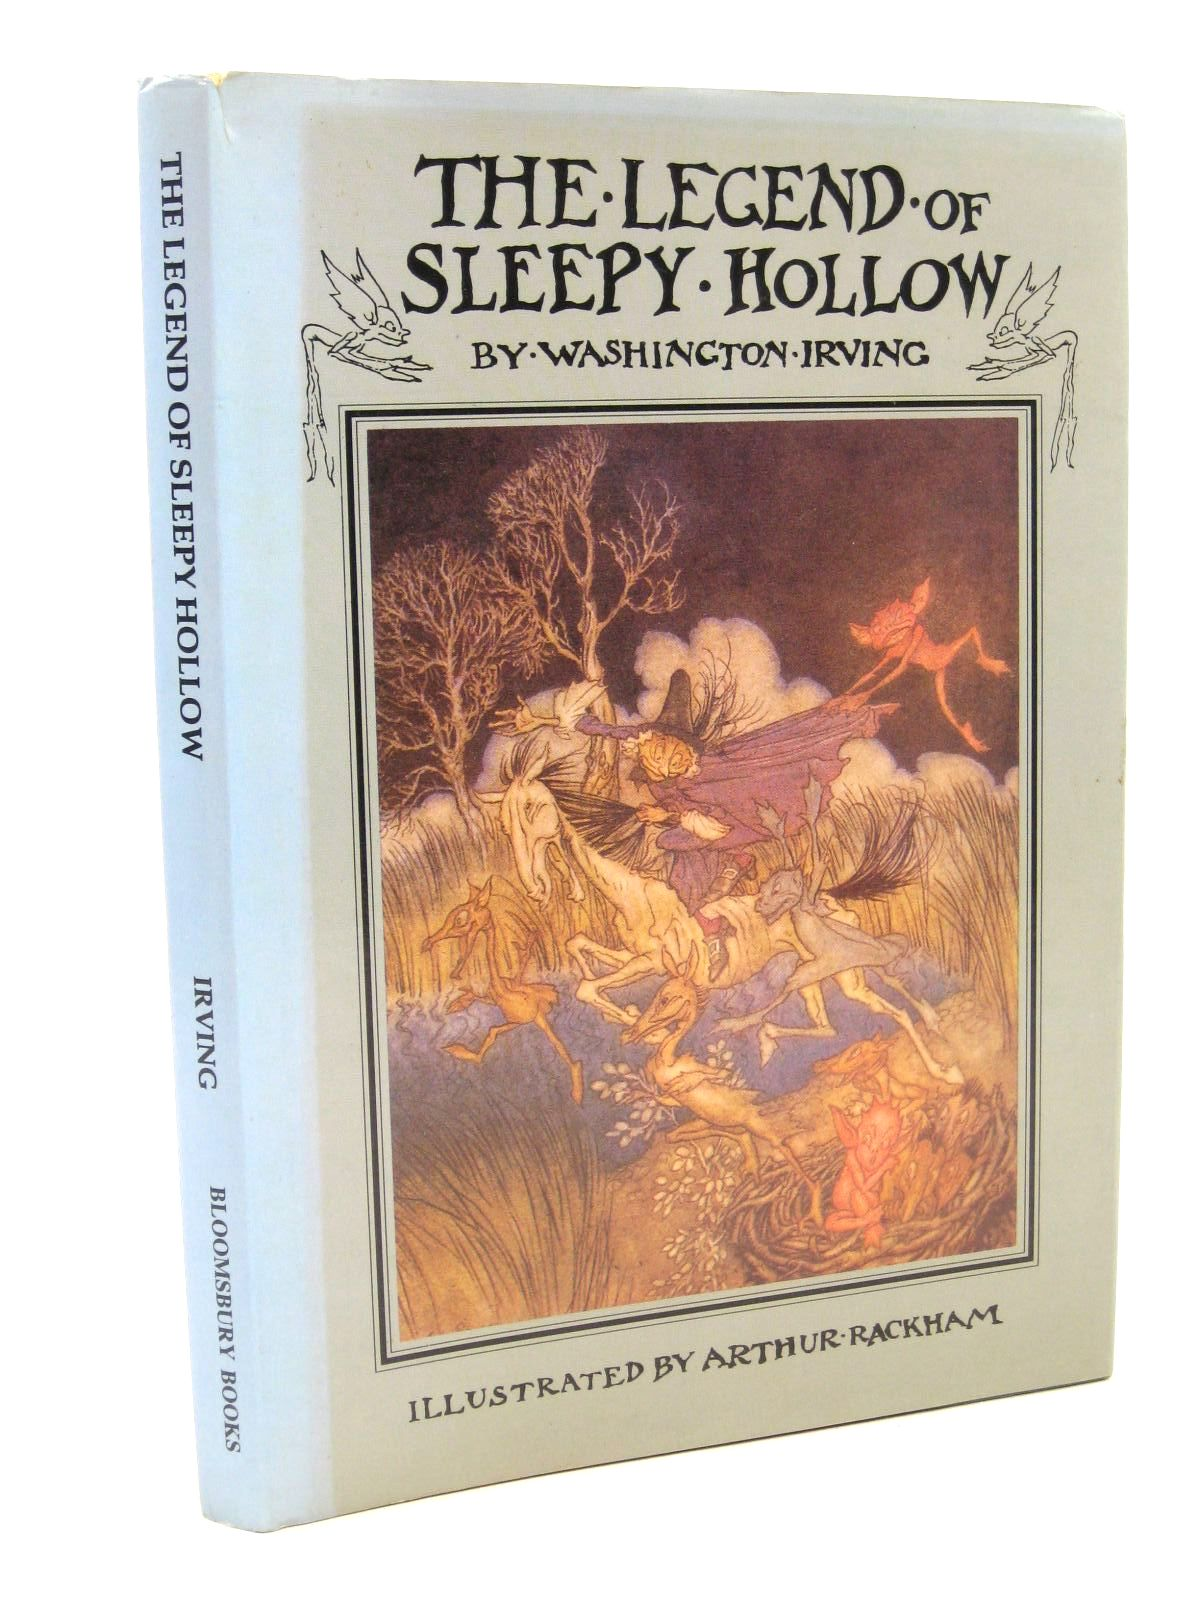 Photo of THE LEGEND OF SLEEPY HOLLOW written by Irving, Washington illustrated by Rackham, Arthur published by Bloomsbury Books (STOCK CODE: 1316826)  for sale by Stella & Rose's Books